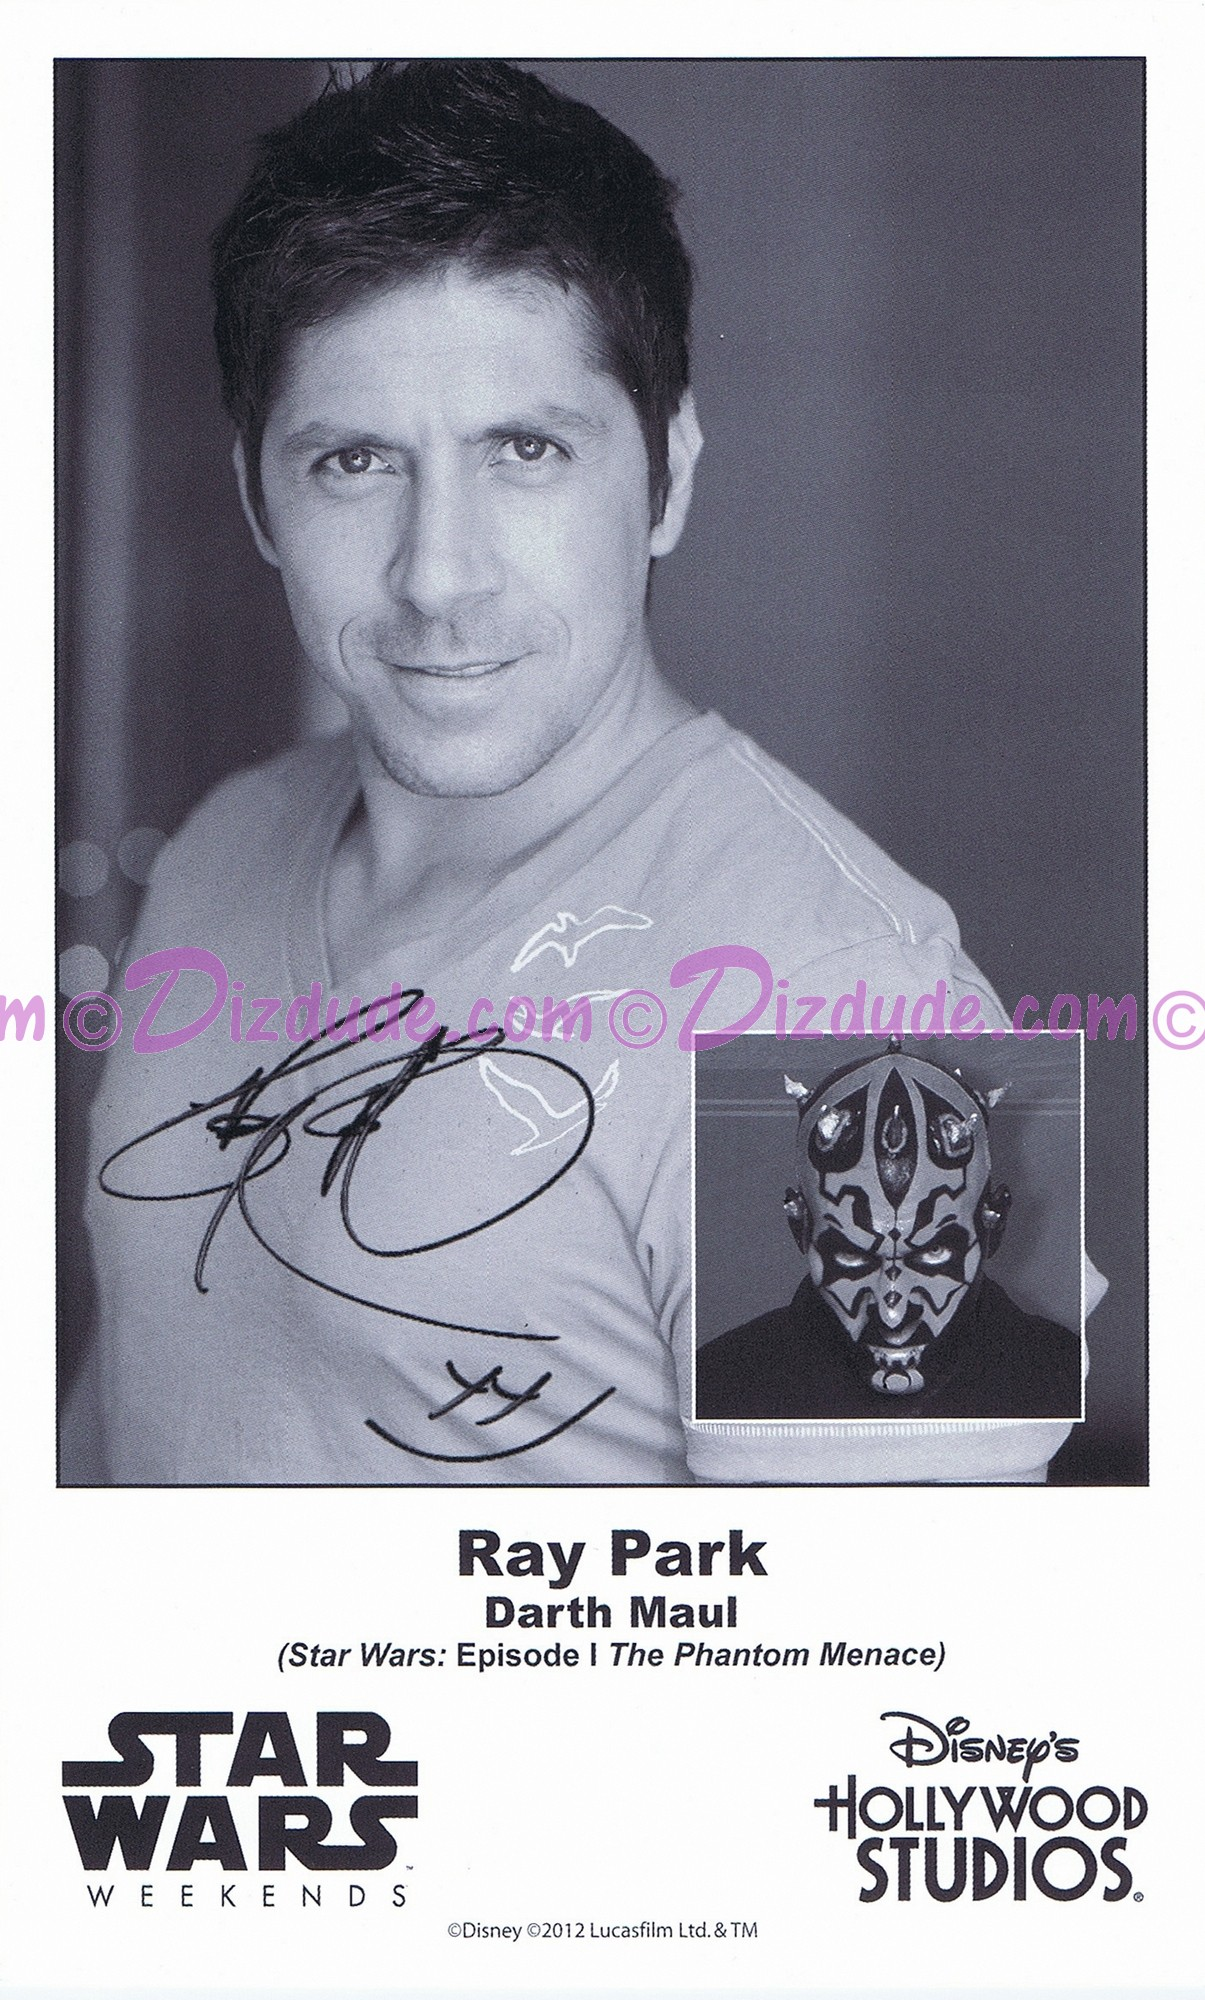 Ray Park who played Darth Maul Presigned Official Star Wars Weekends 2012 Celebrity Collector Photo